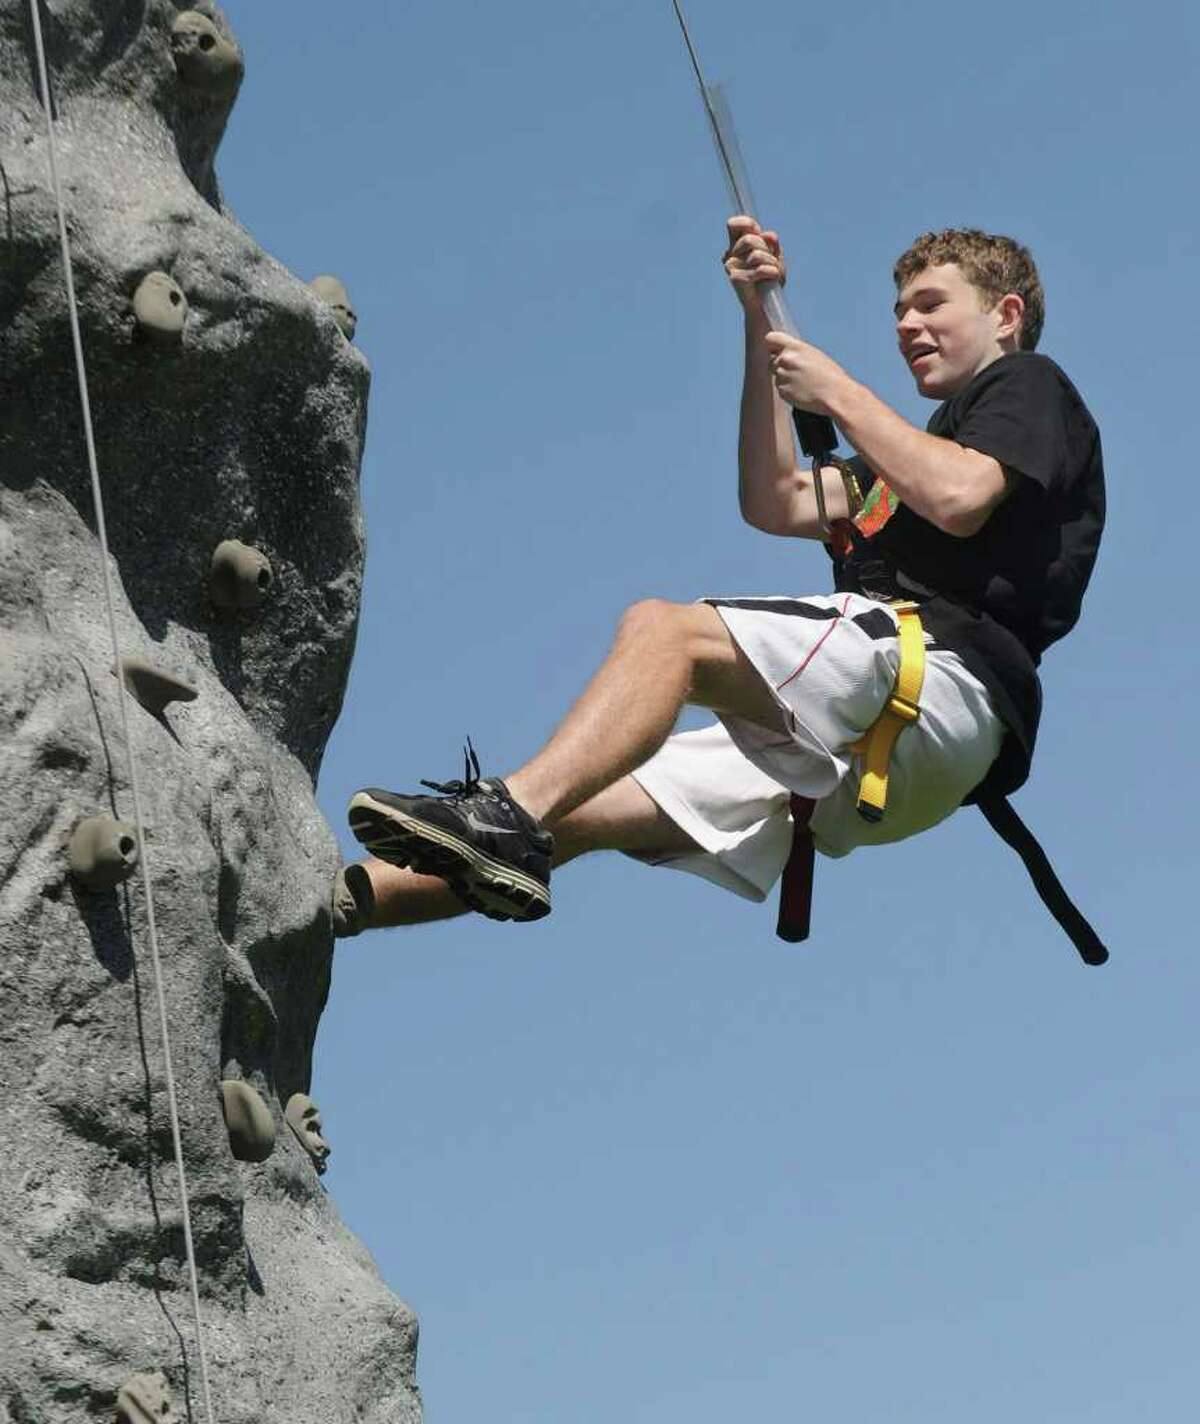 Griffin Teed, 16, climbs the rock wall during an ROTC activity at Bethel High School Thursday, June 2, 2011.